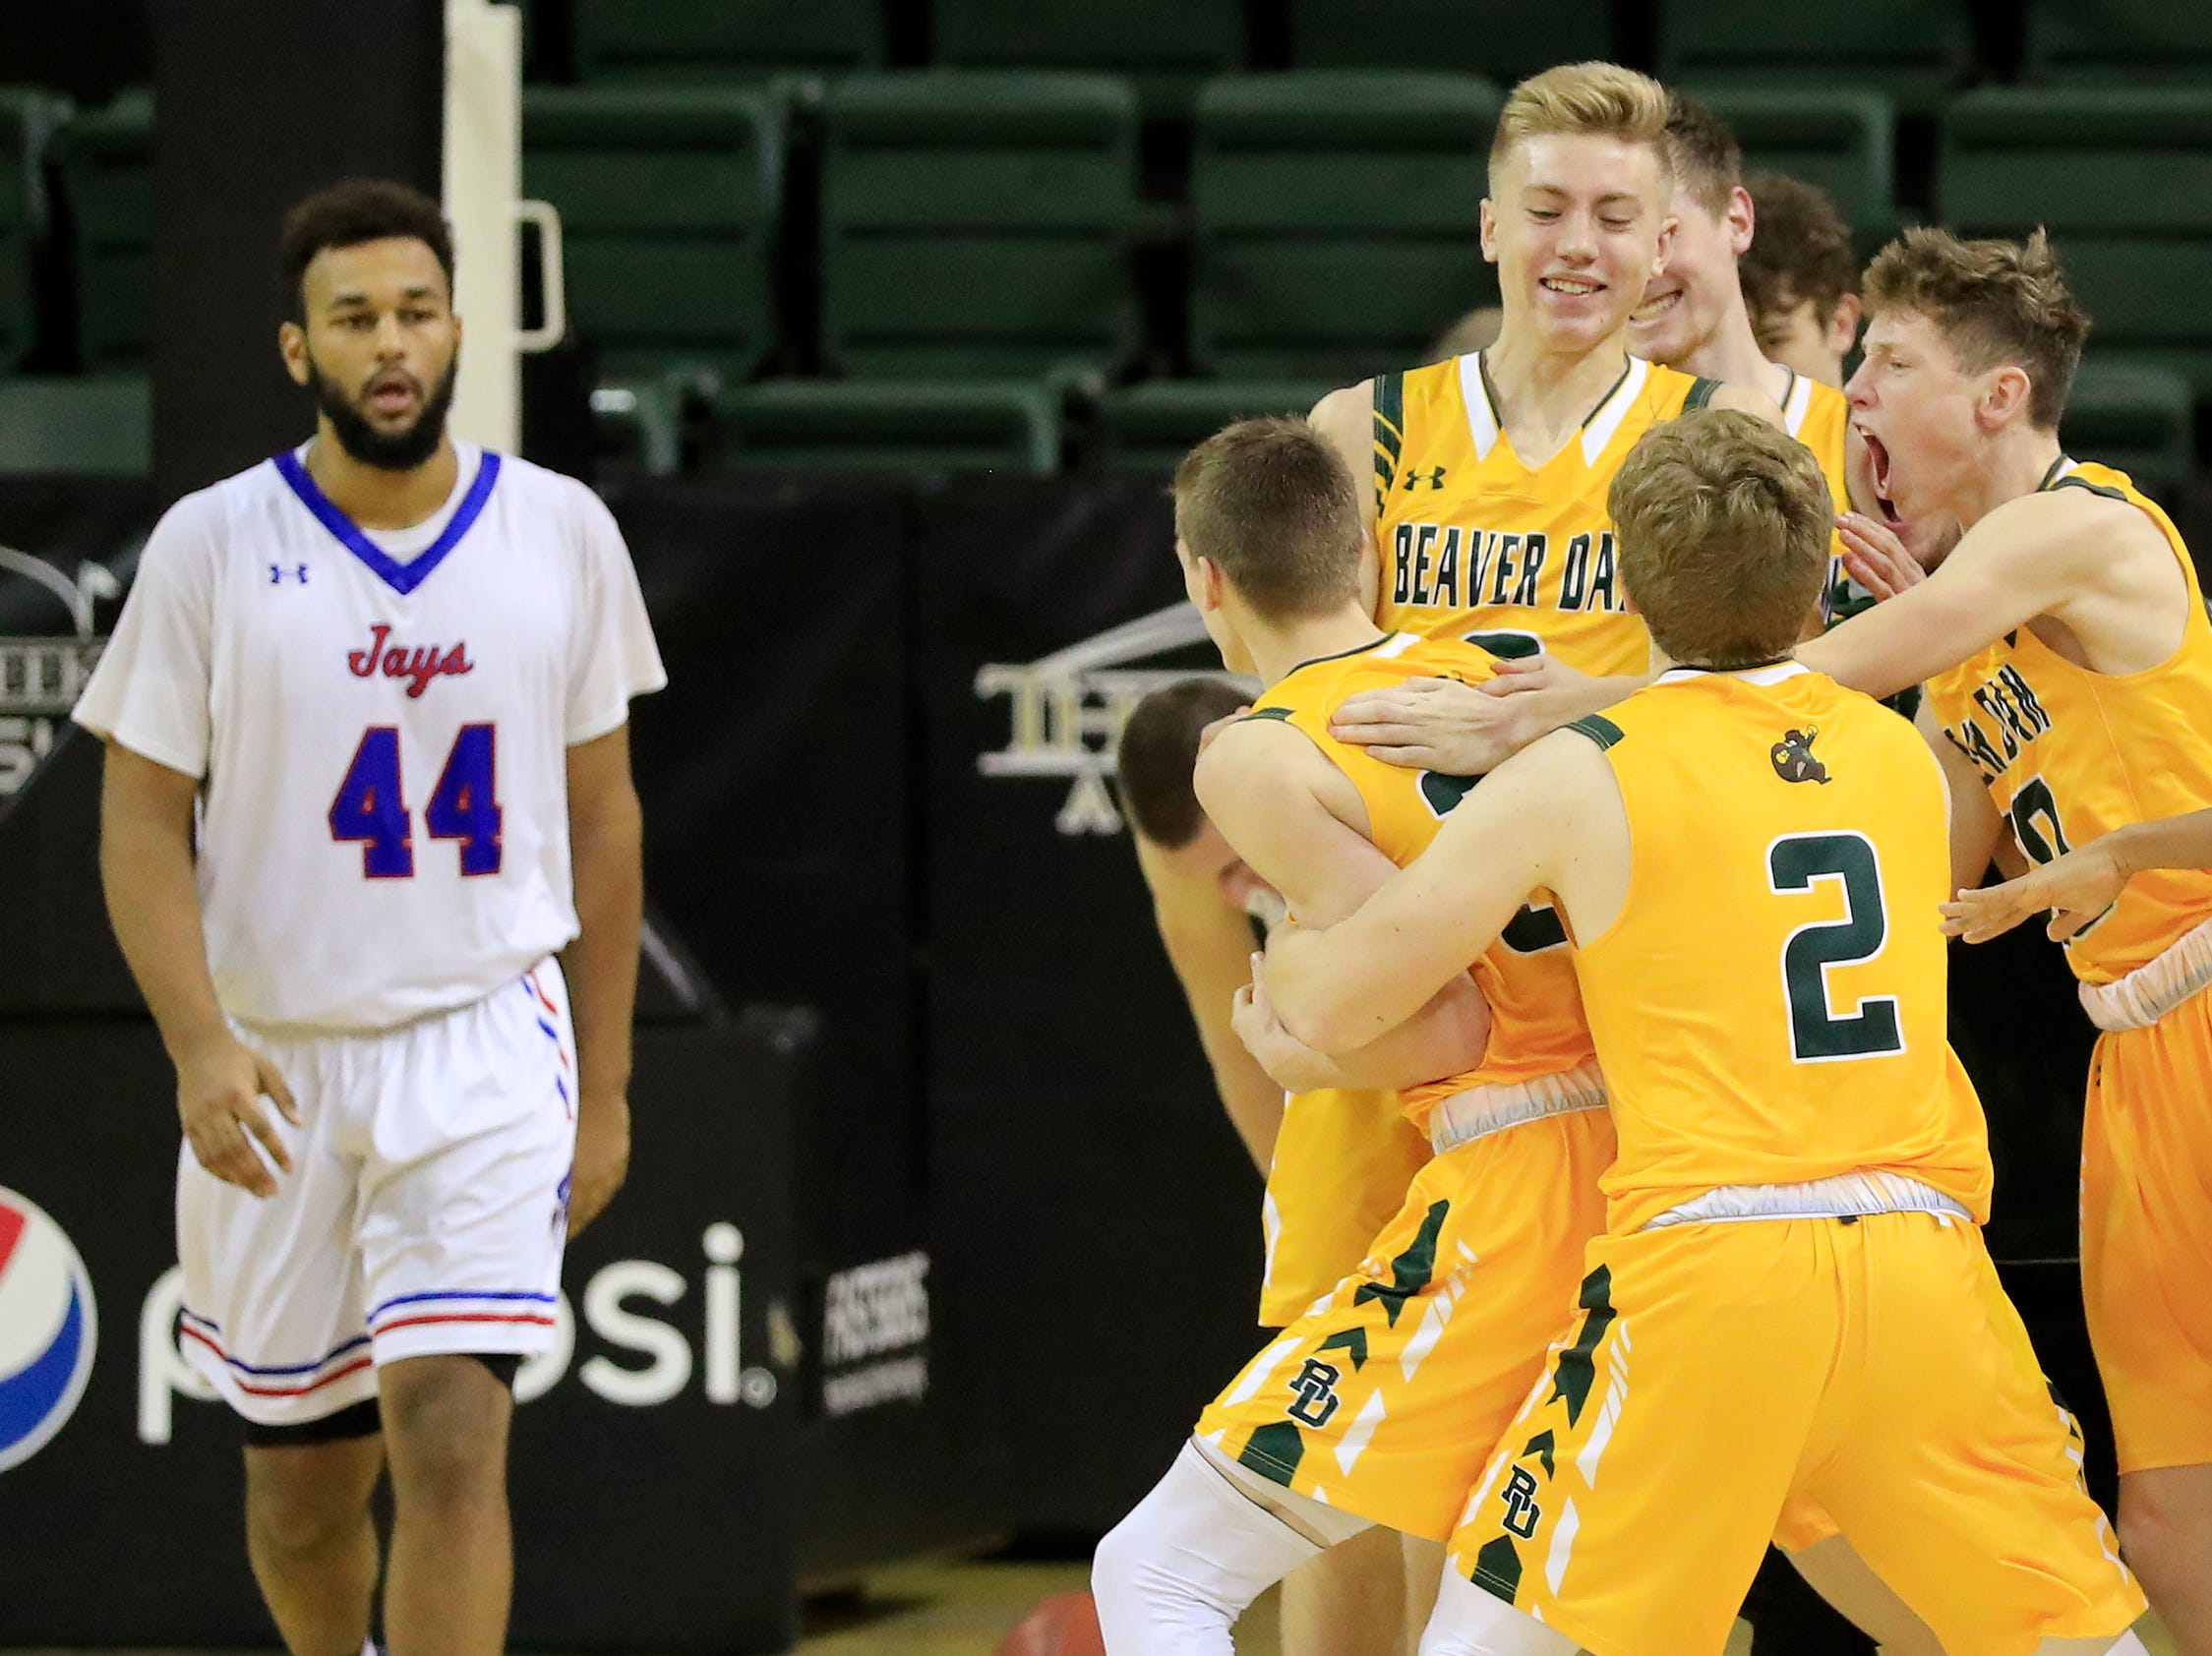 Beaver Dam players celebrate after defeating Merrill with a buzzer-beater at the Shawano Shootout at the Kress Center on Friday, December 28, 2018 in Green Bay, Wis.